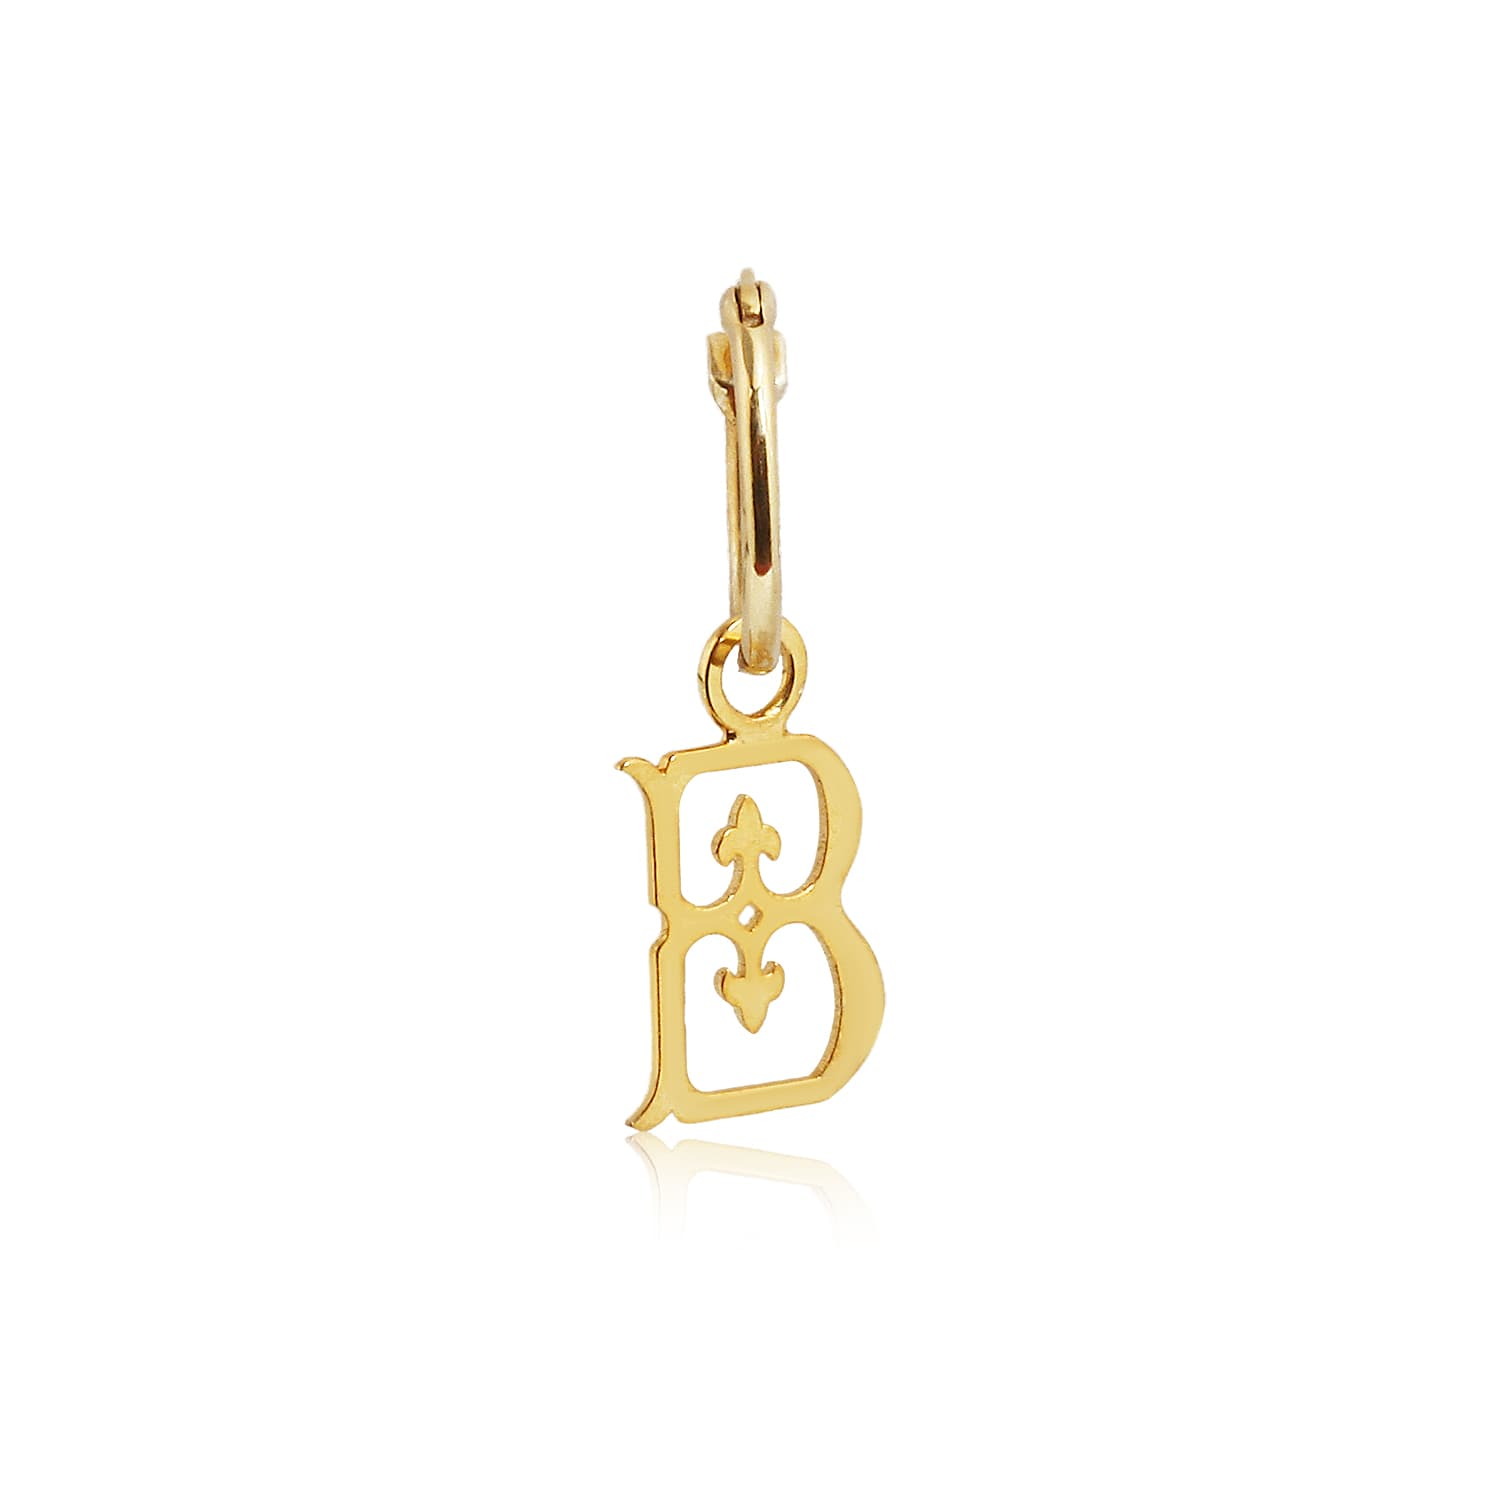 LETTER B VINTAGE EARRINGS